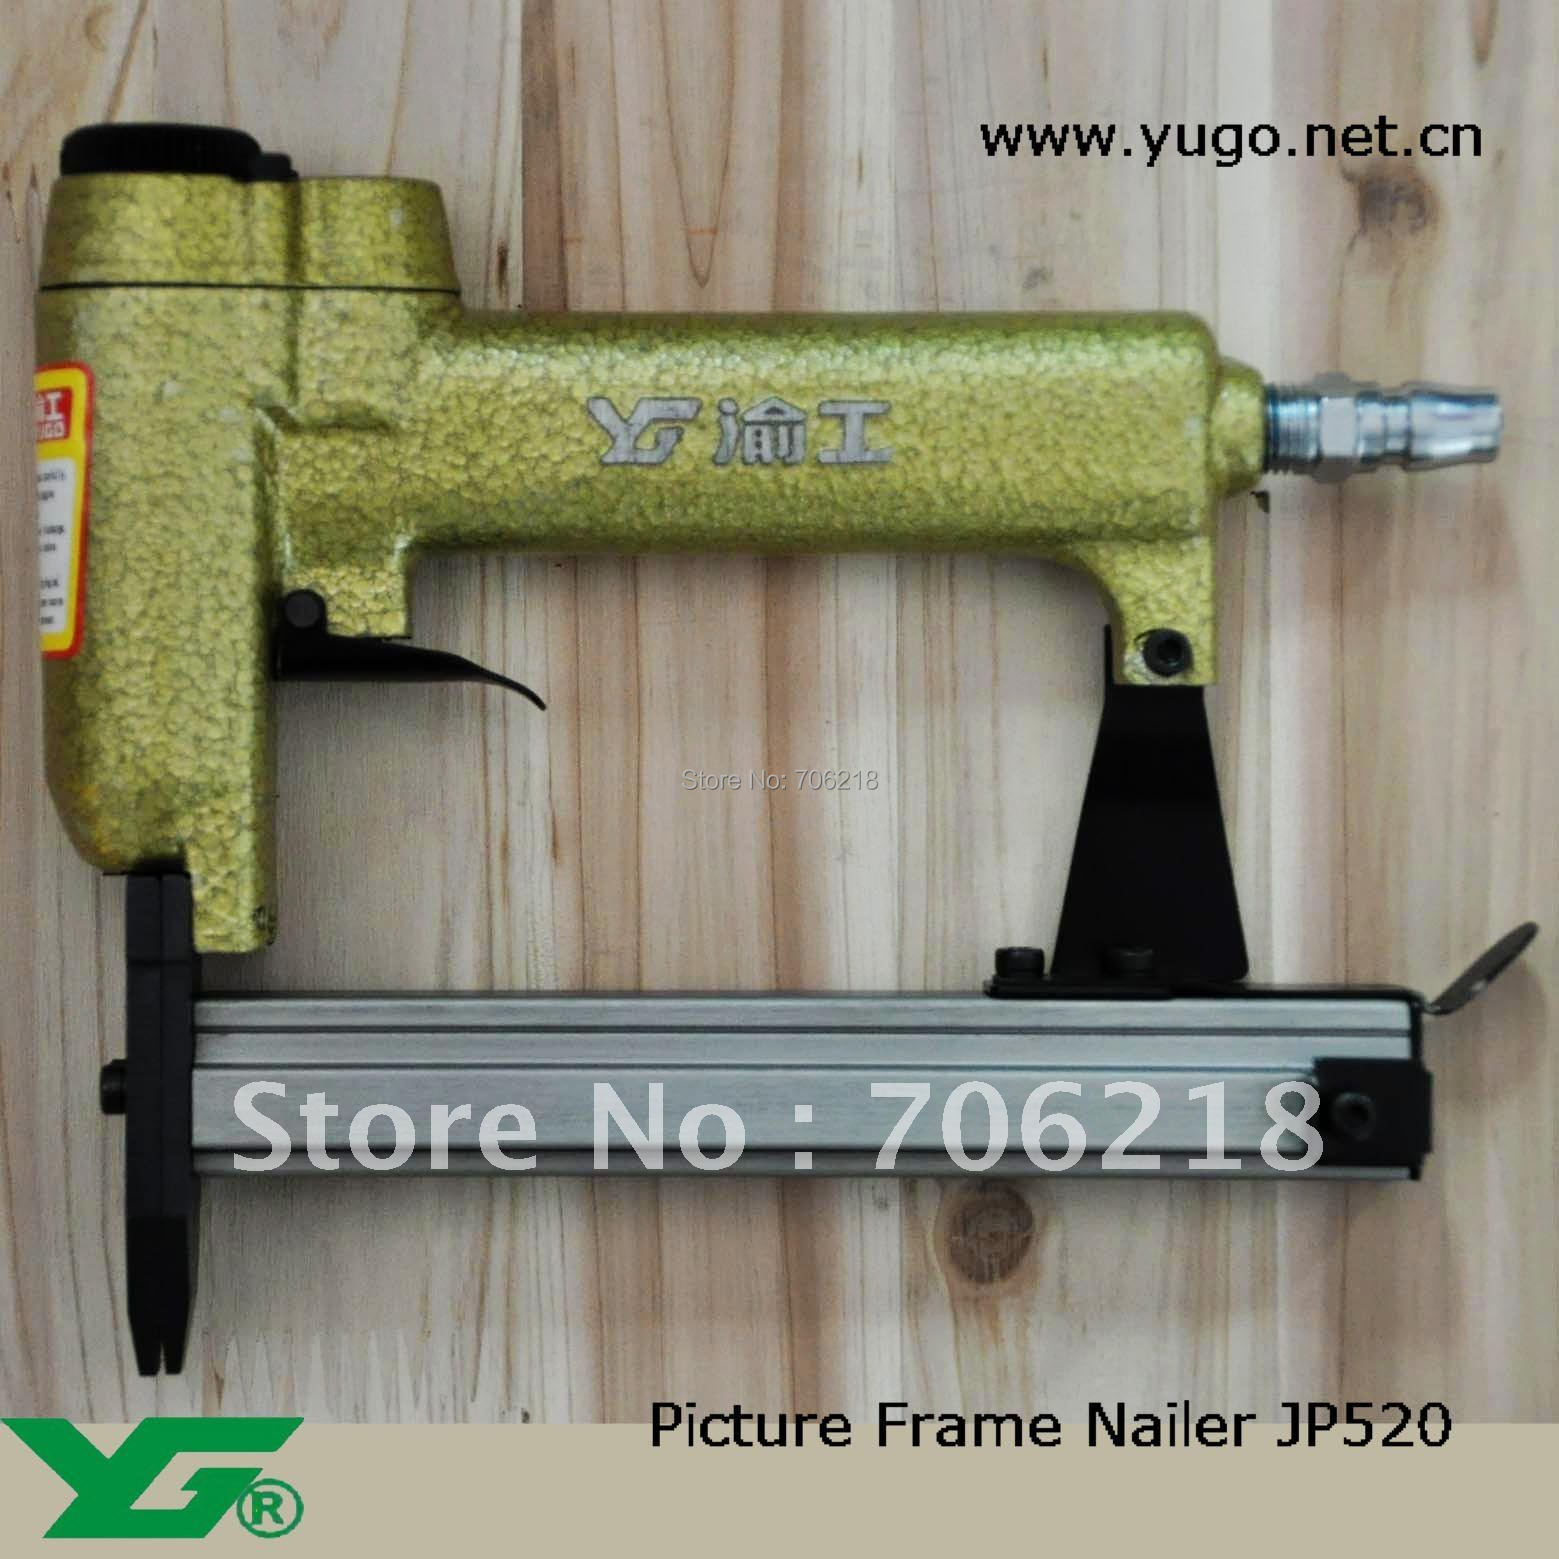 Air picture frame nailerv nailer gun jp520 in nail guns from air picture frame nailerv nailer gun jp520 in nail guns from tools on aliexpress alibaba group jeuxipadfo Images